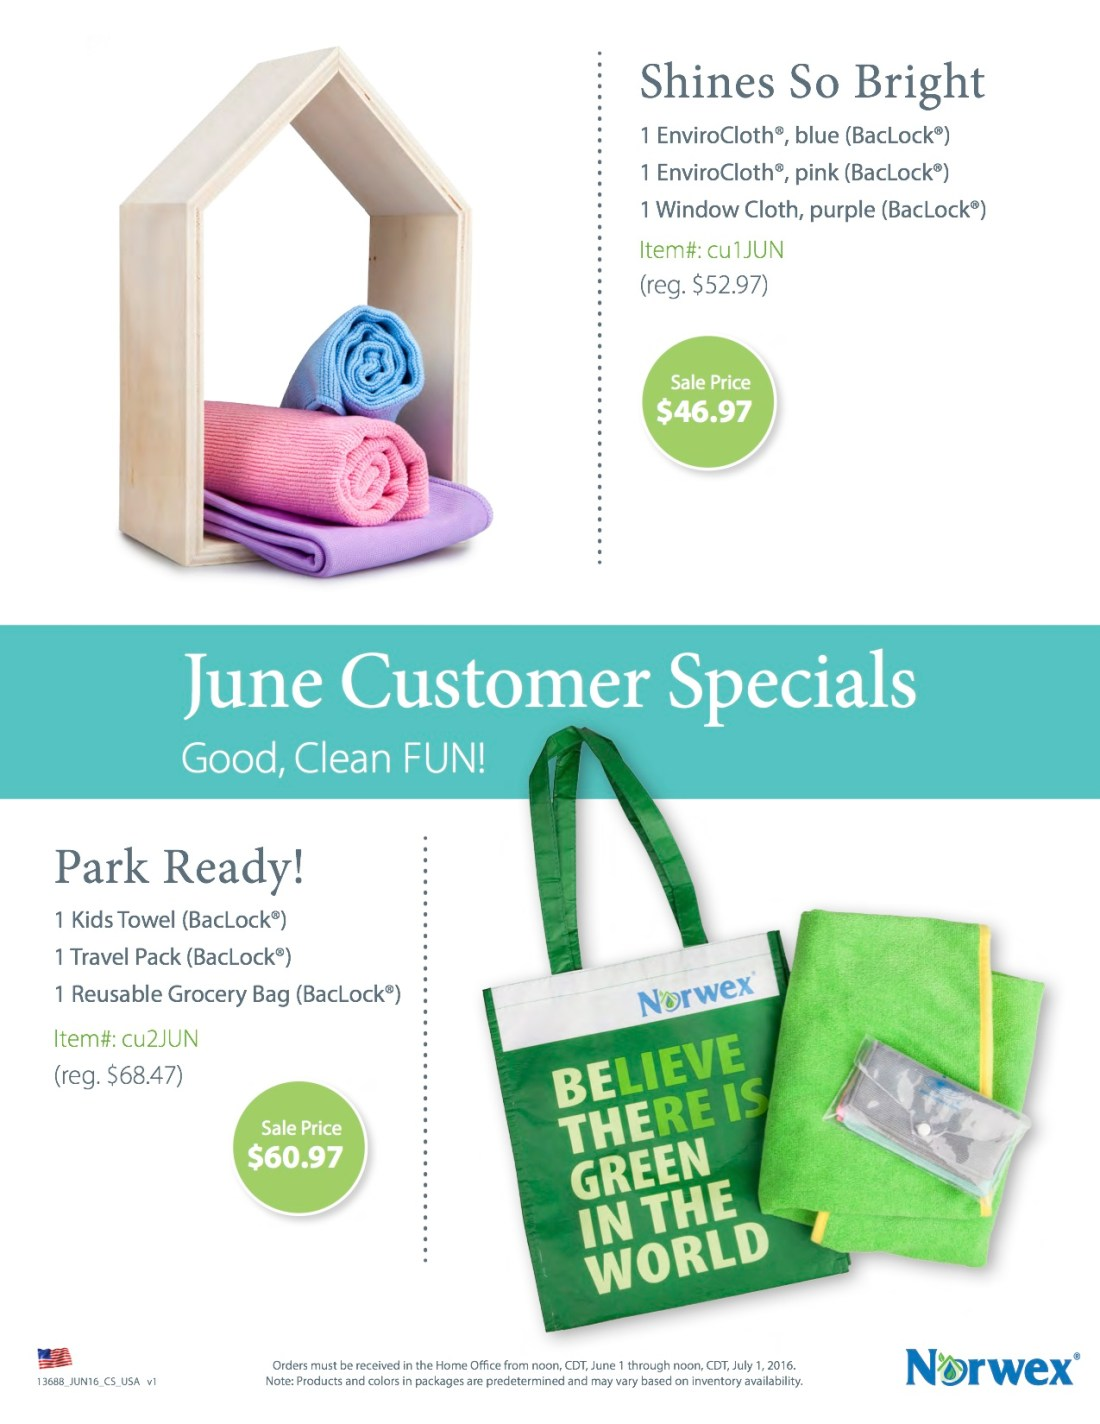 June 2016 Customer Specials